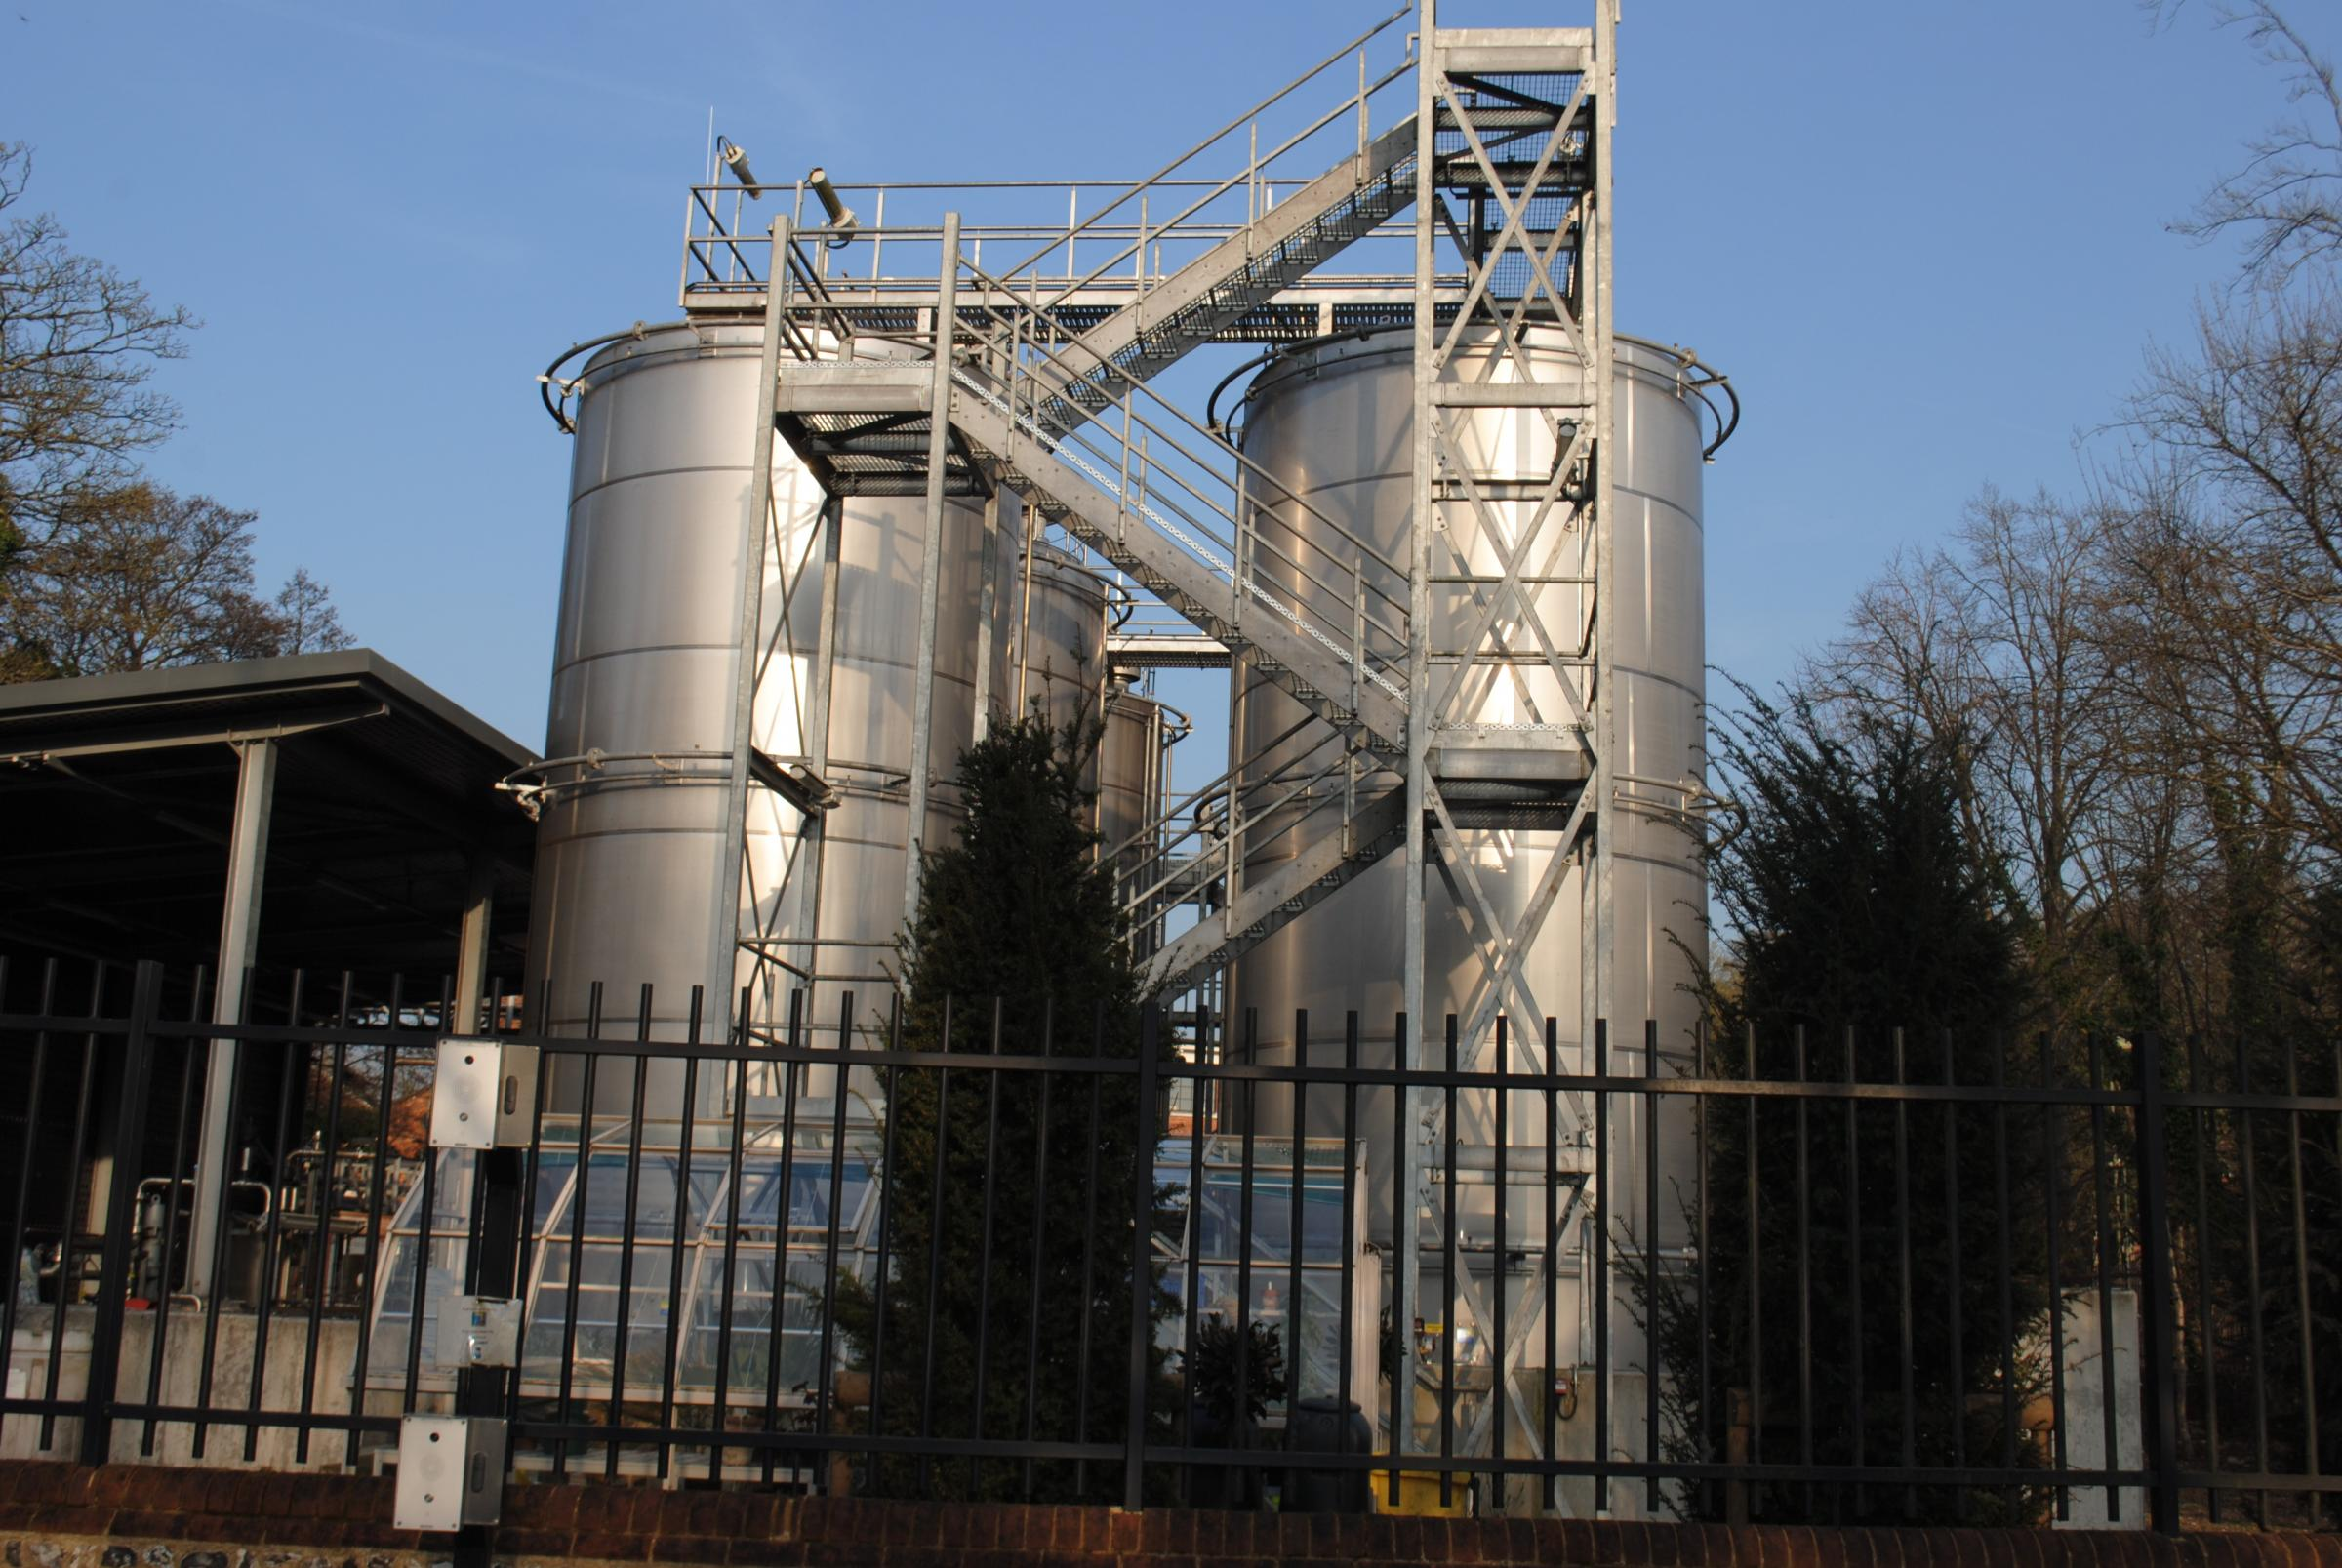 The tanks at the distillery opposite their house